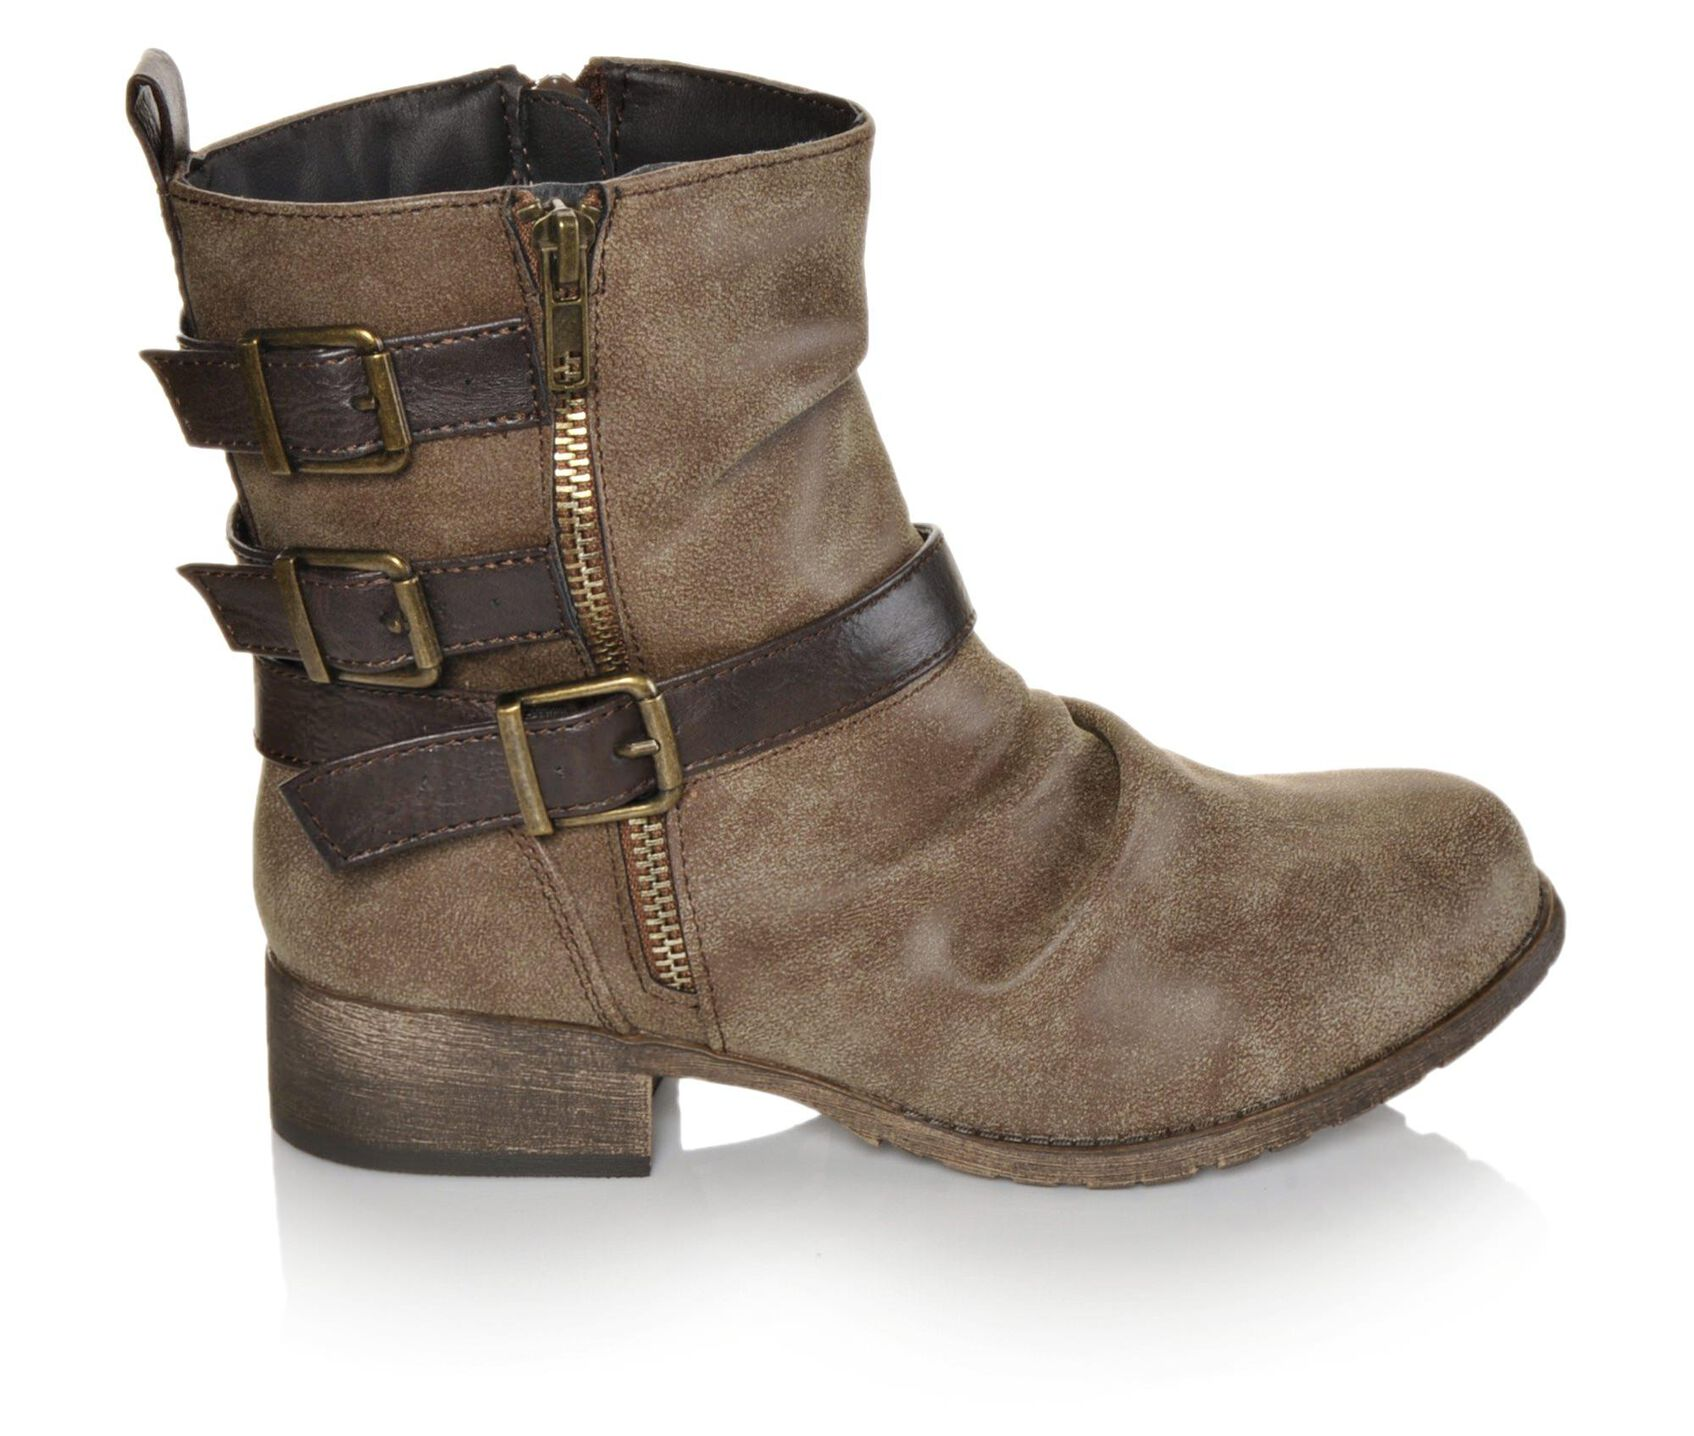 sedona women Shop the bradford exchange online for spirit of sedona women's jacket smart shoppers realize the unparalleled value in handcrafted collectibles and fine jewelry designs.